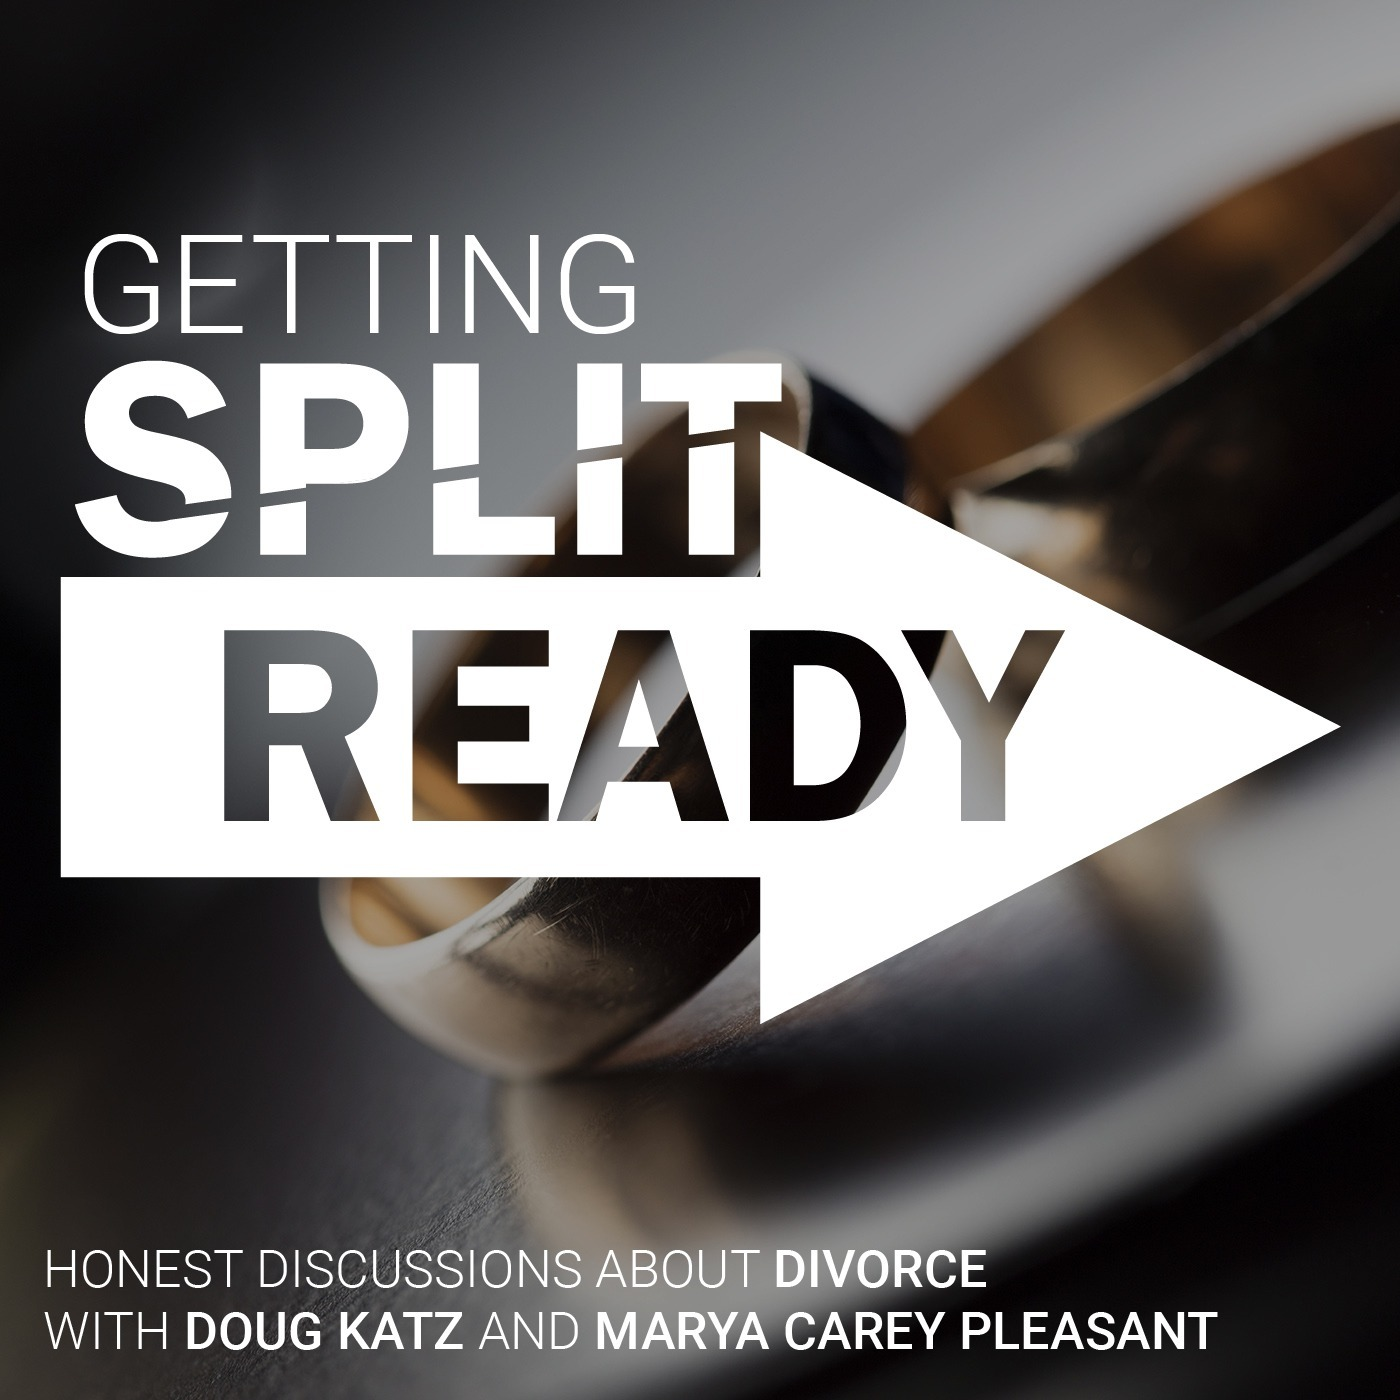 Getting Split Ready Episode 2 (Preview): Real Estate, Real Issues